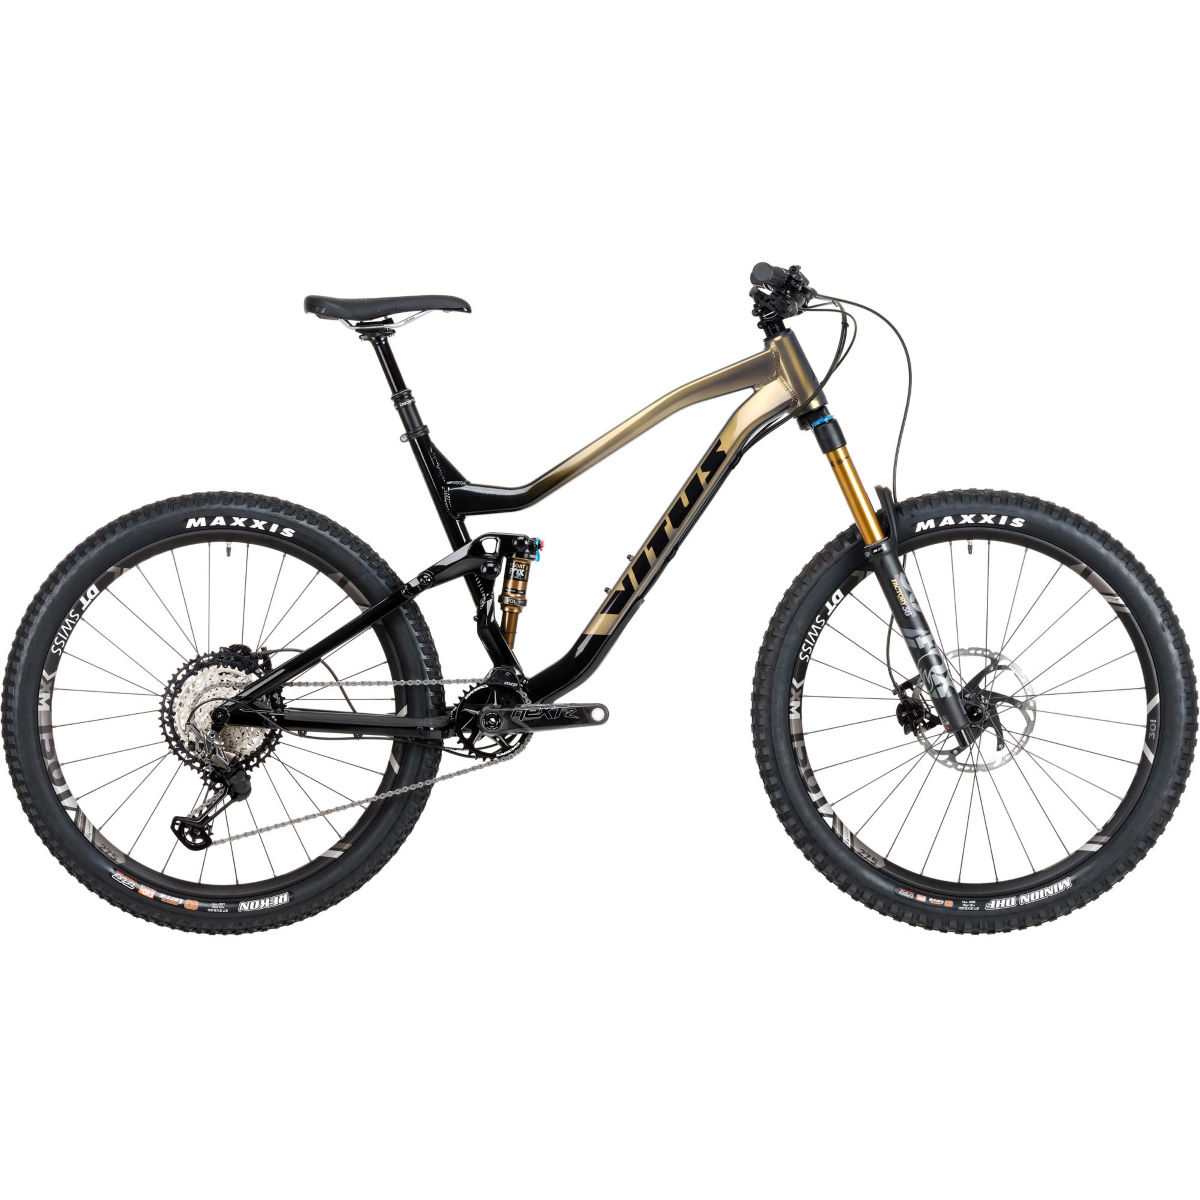 Vitus Vitus Escarpe 27 VRX Bike (XT 1x12 - 2020)   Full Suspension Mountain Bikes